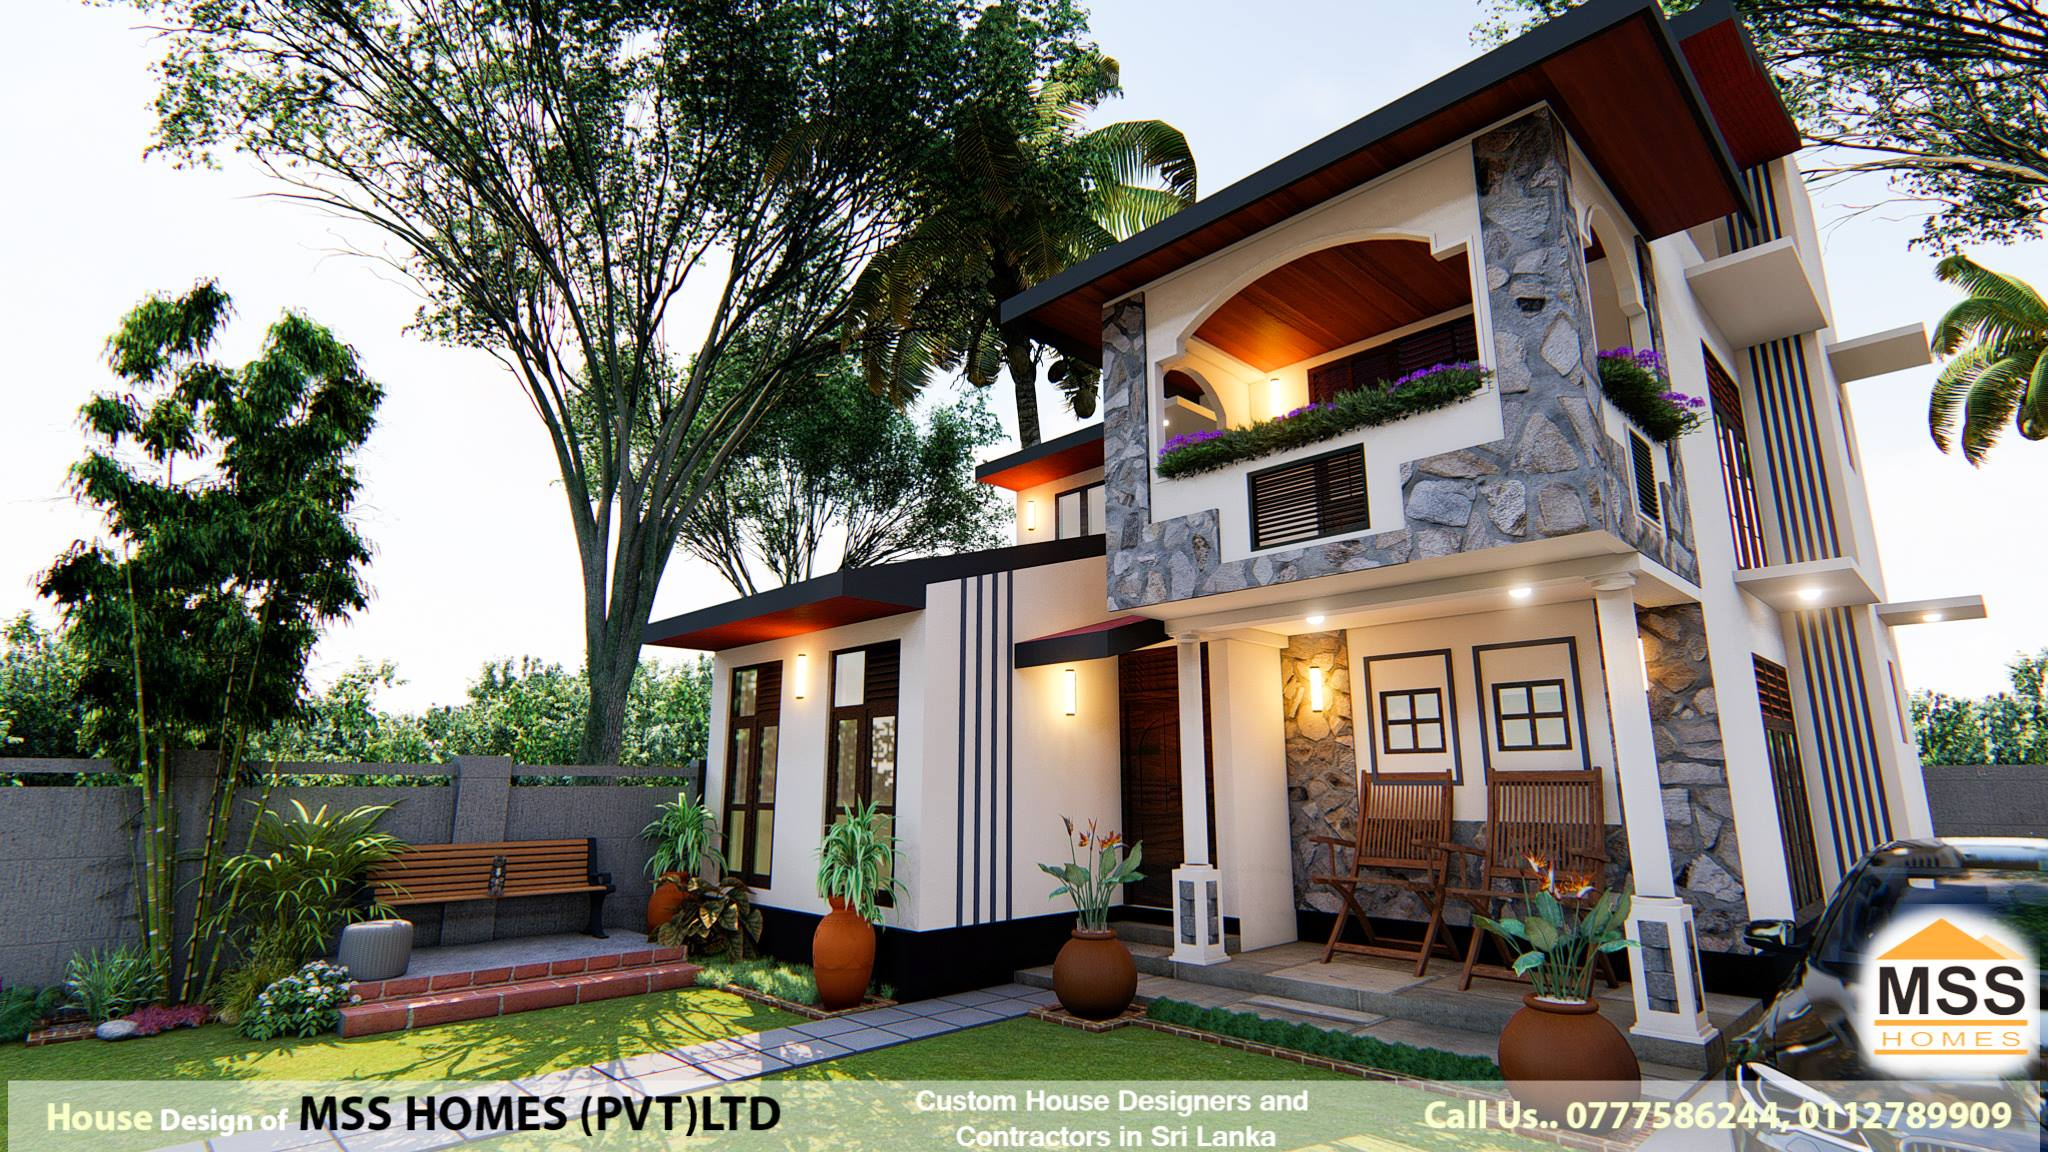 House builders in sri lanka | House designs in sri lanka